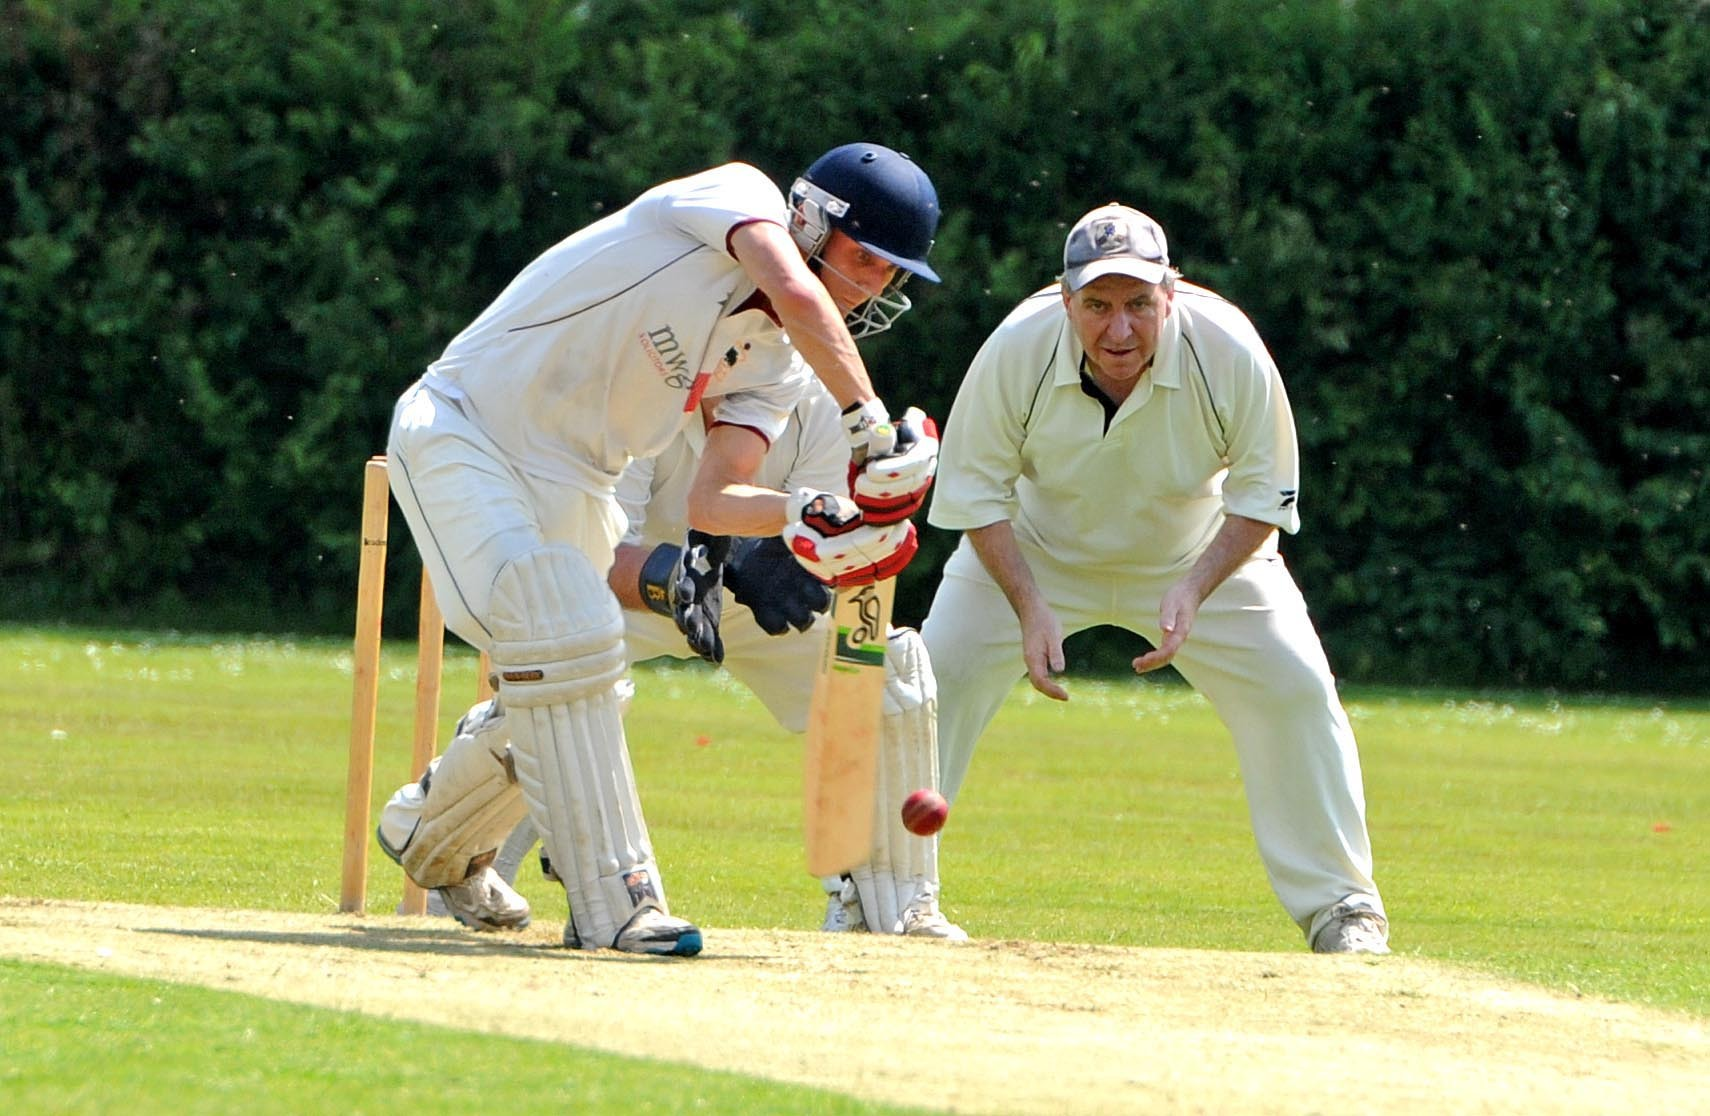 Darren Longden helped to stabilise Knutsford seconds' innings during their Cheshire League clash with Langley on Saturday